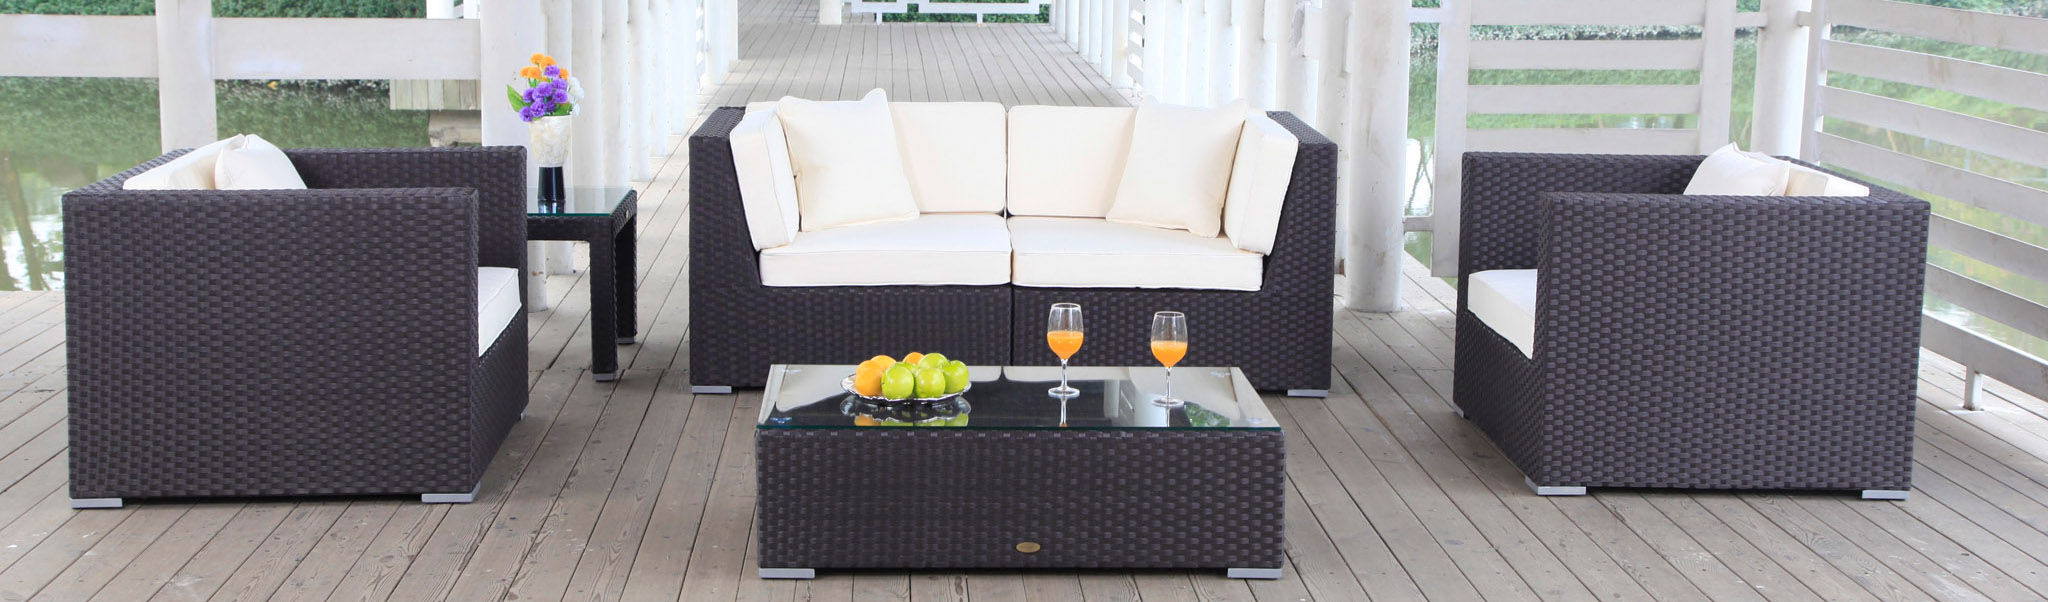 poly-rattan lounge furniture - garden furniture, Garten und Bauen